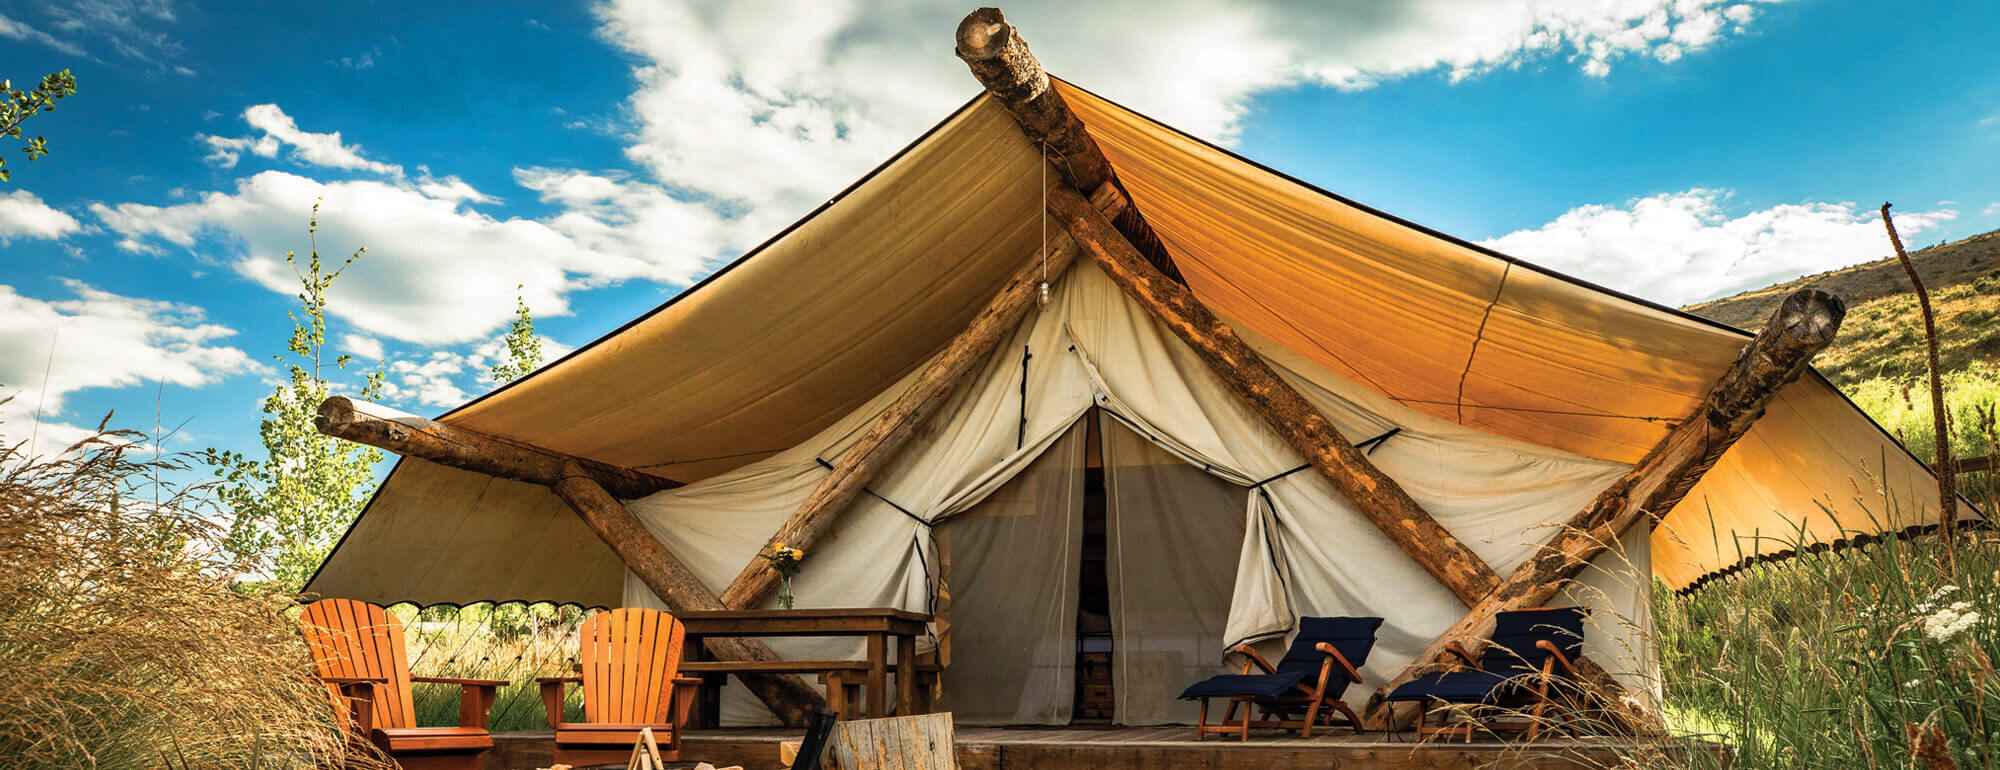 Wagons + Tents + Shower Houses = Glamping Resort